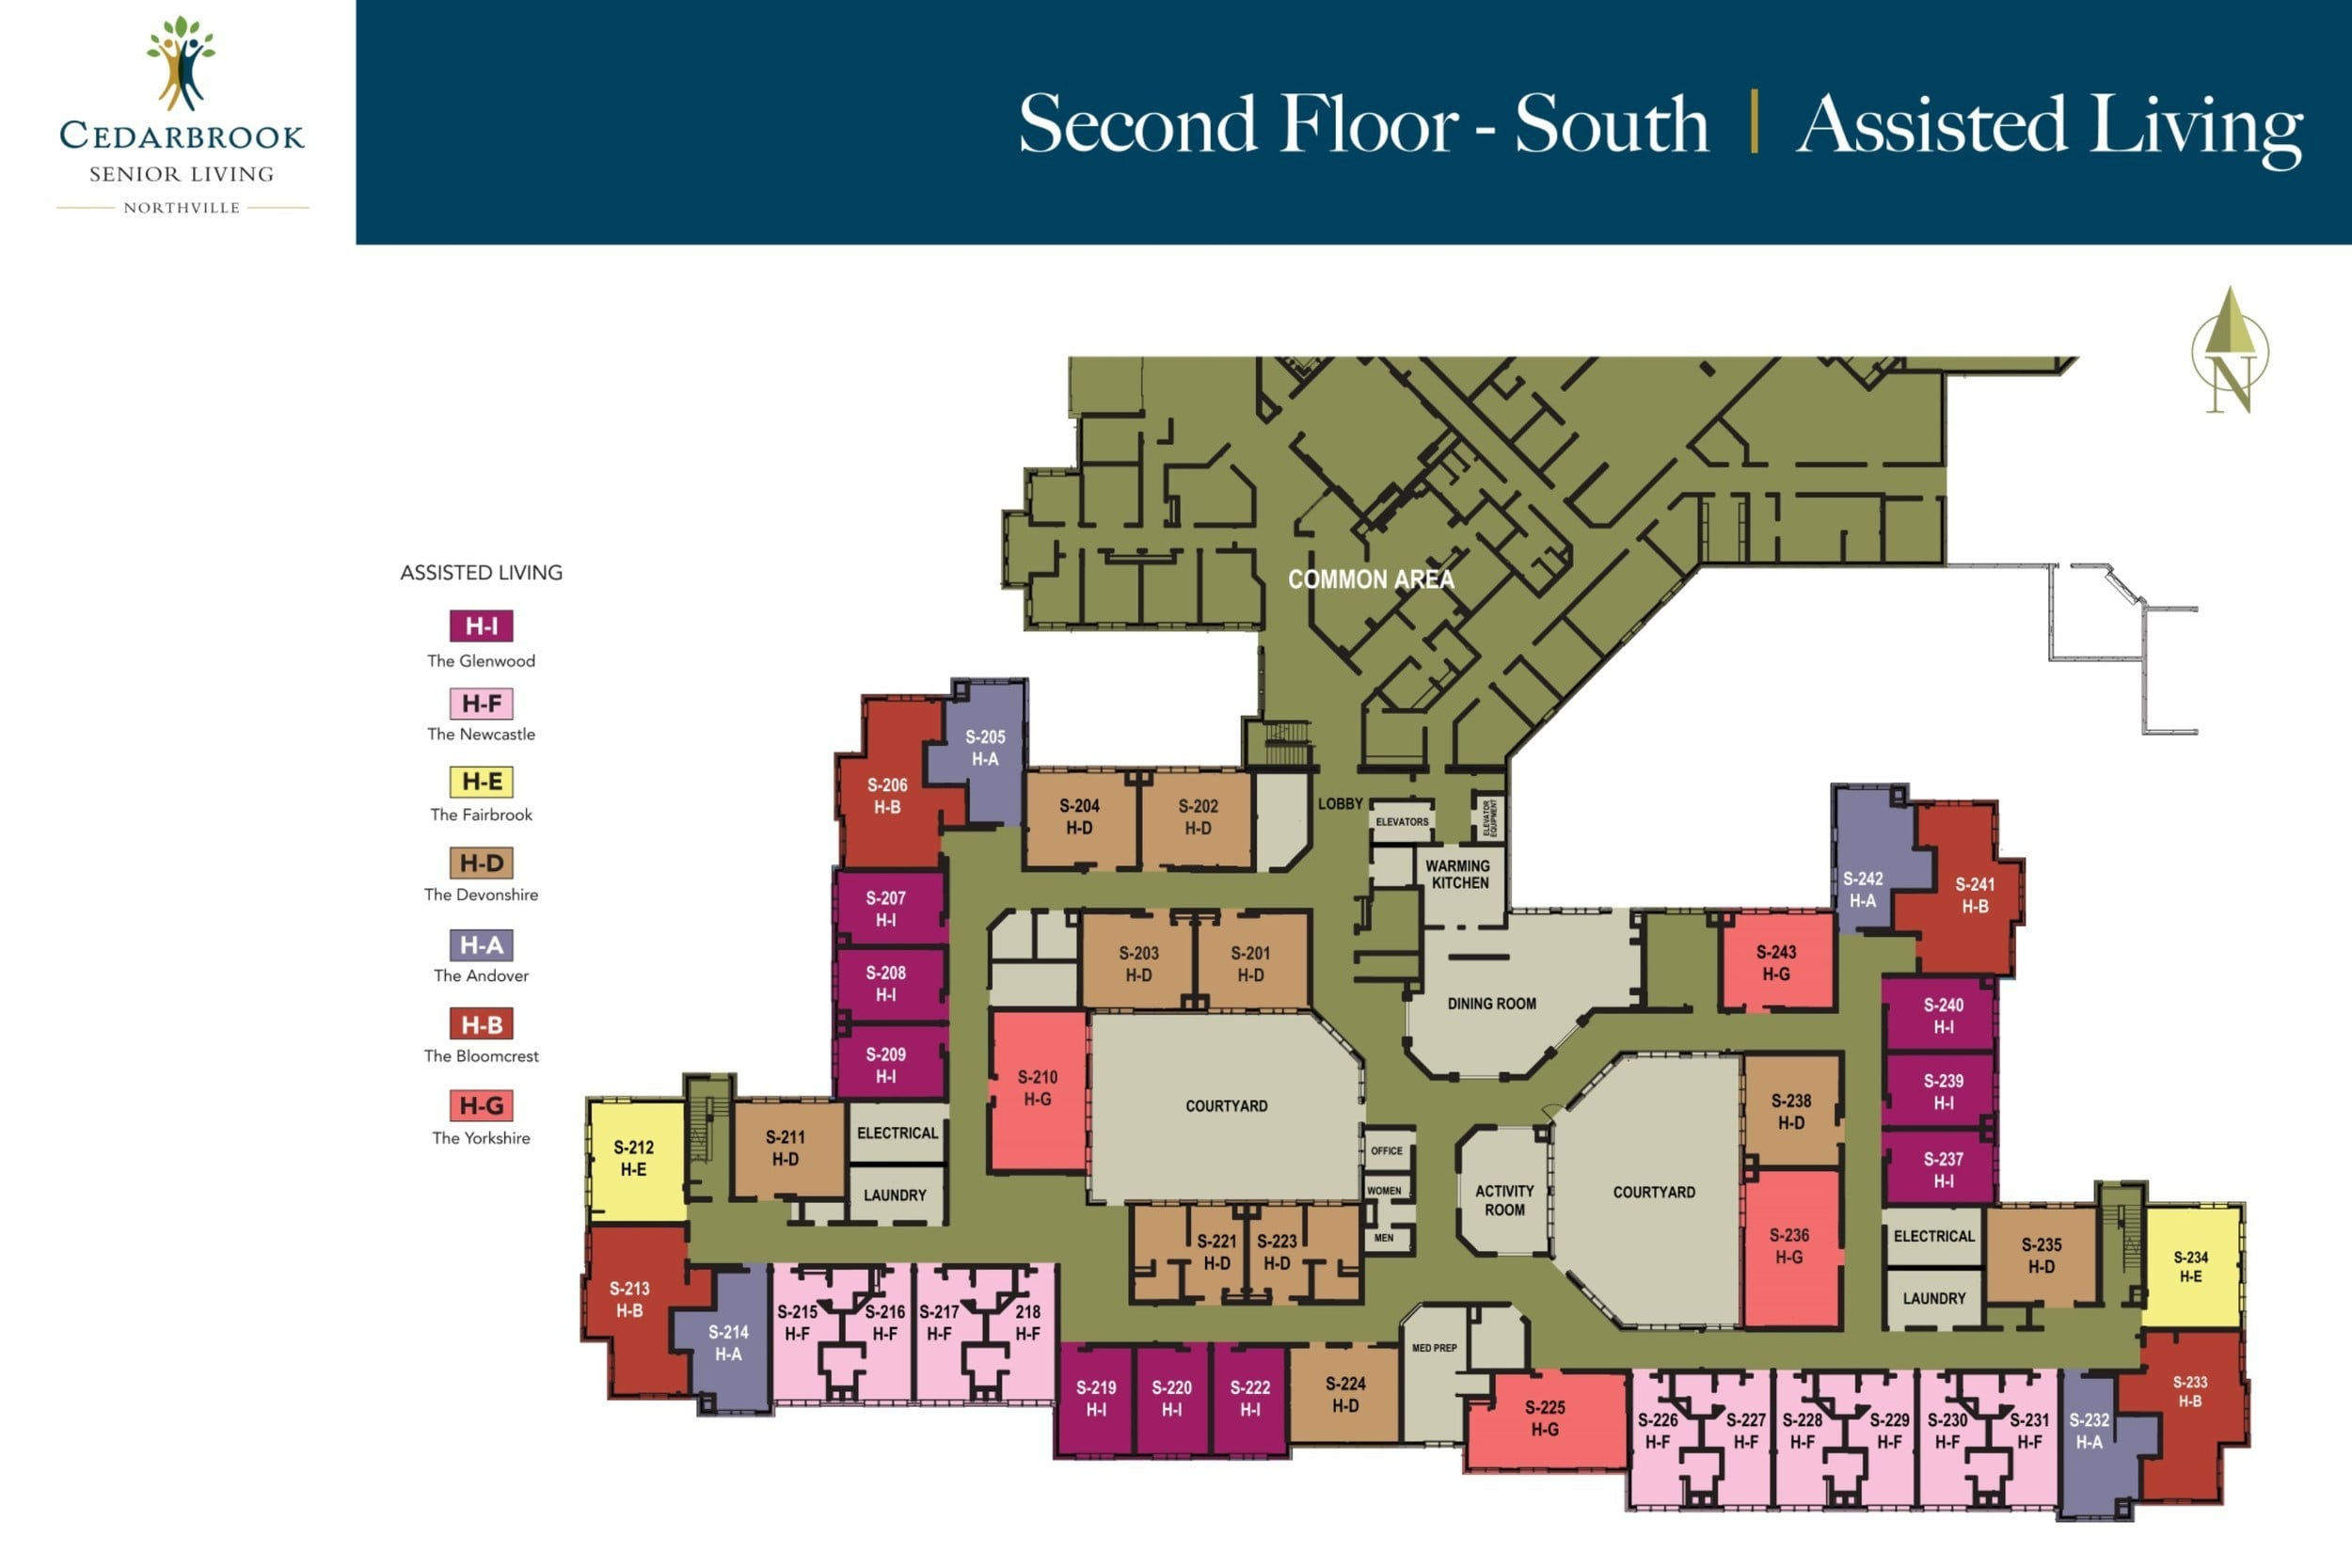 Second Floor South - Assisted Living